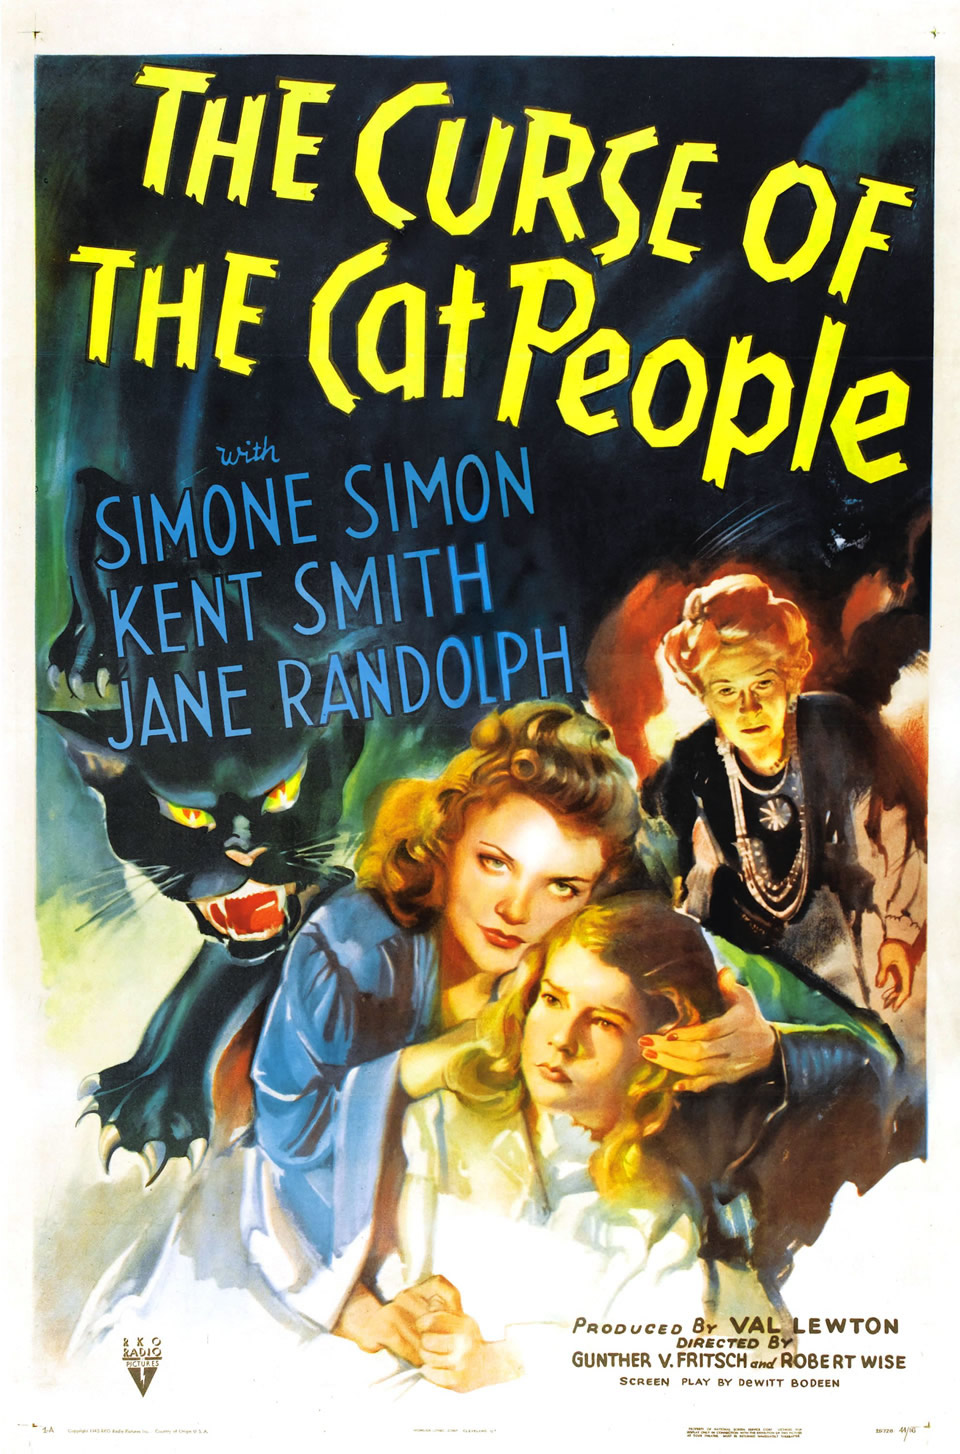 16 - The Curse of the Cat People (1944)